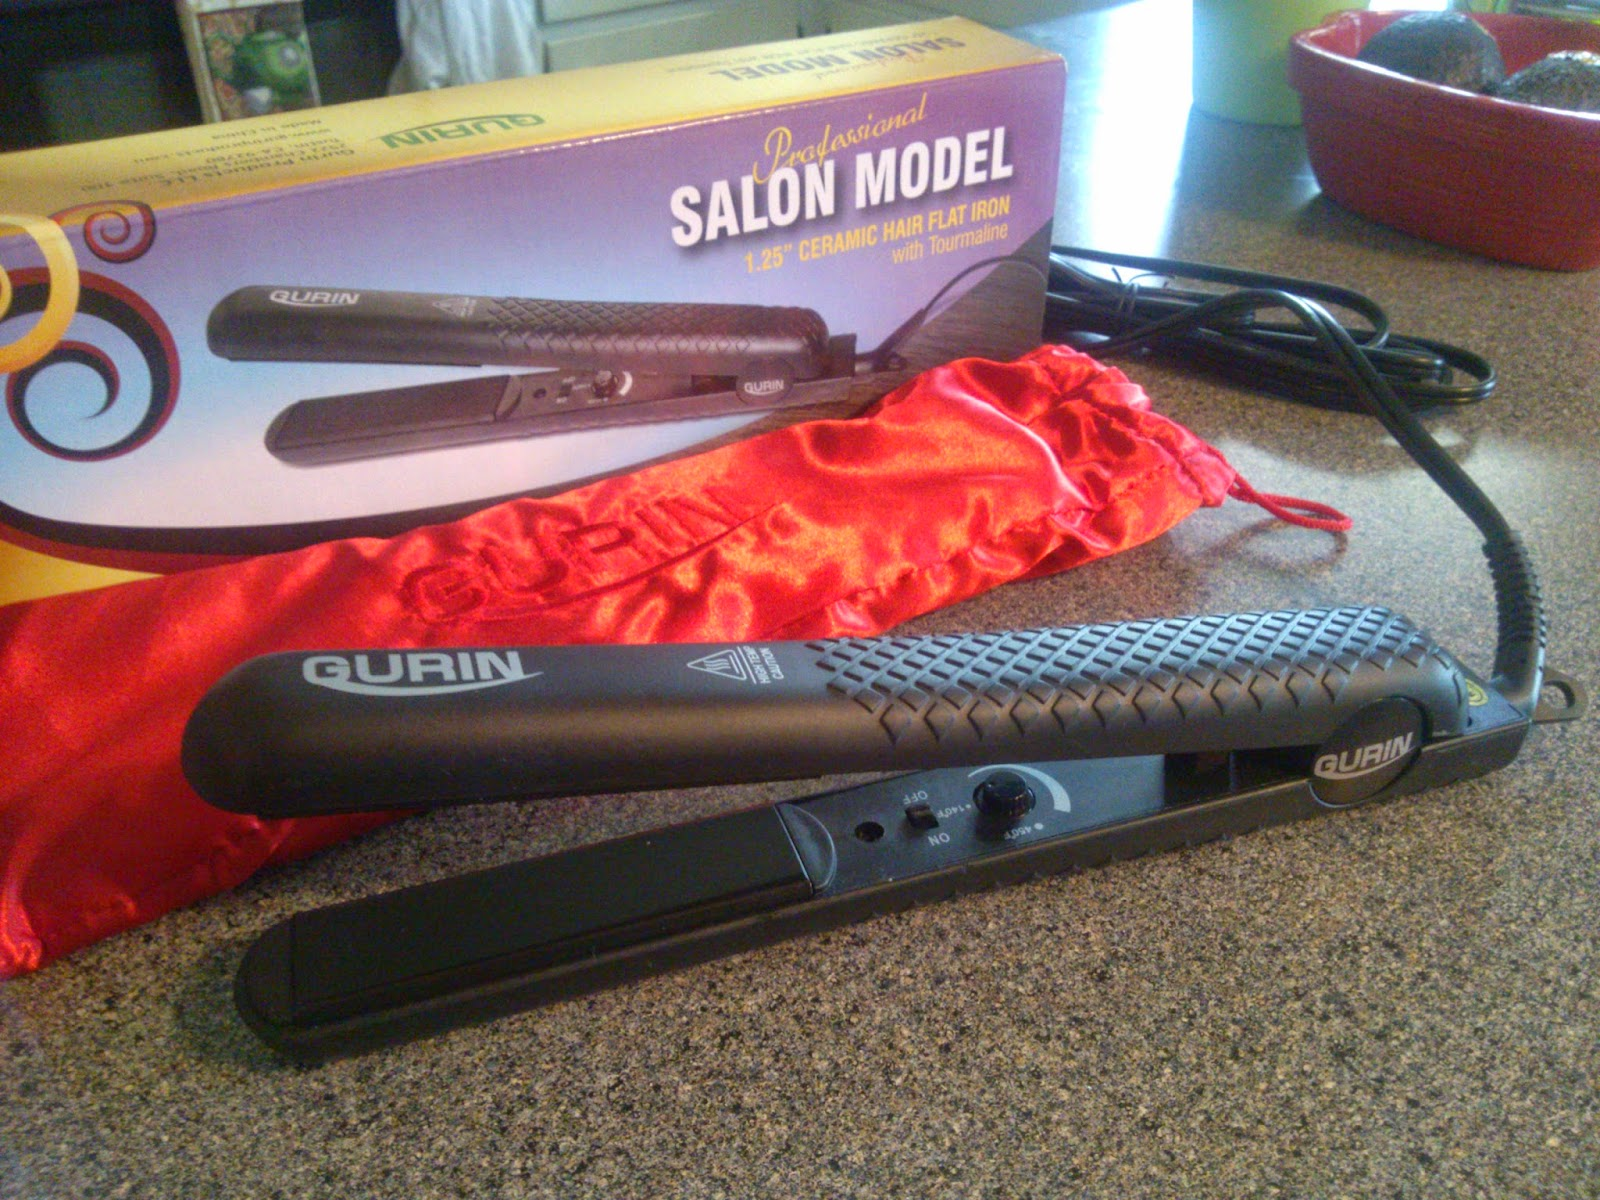 Gurin Salon Model Ceramic Flat Iron Review